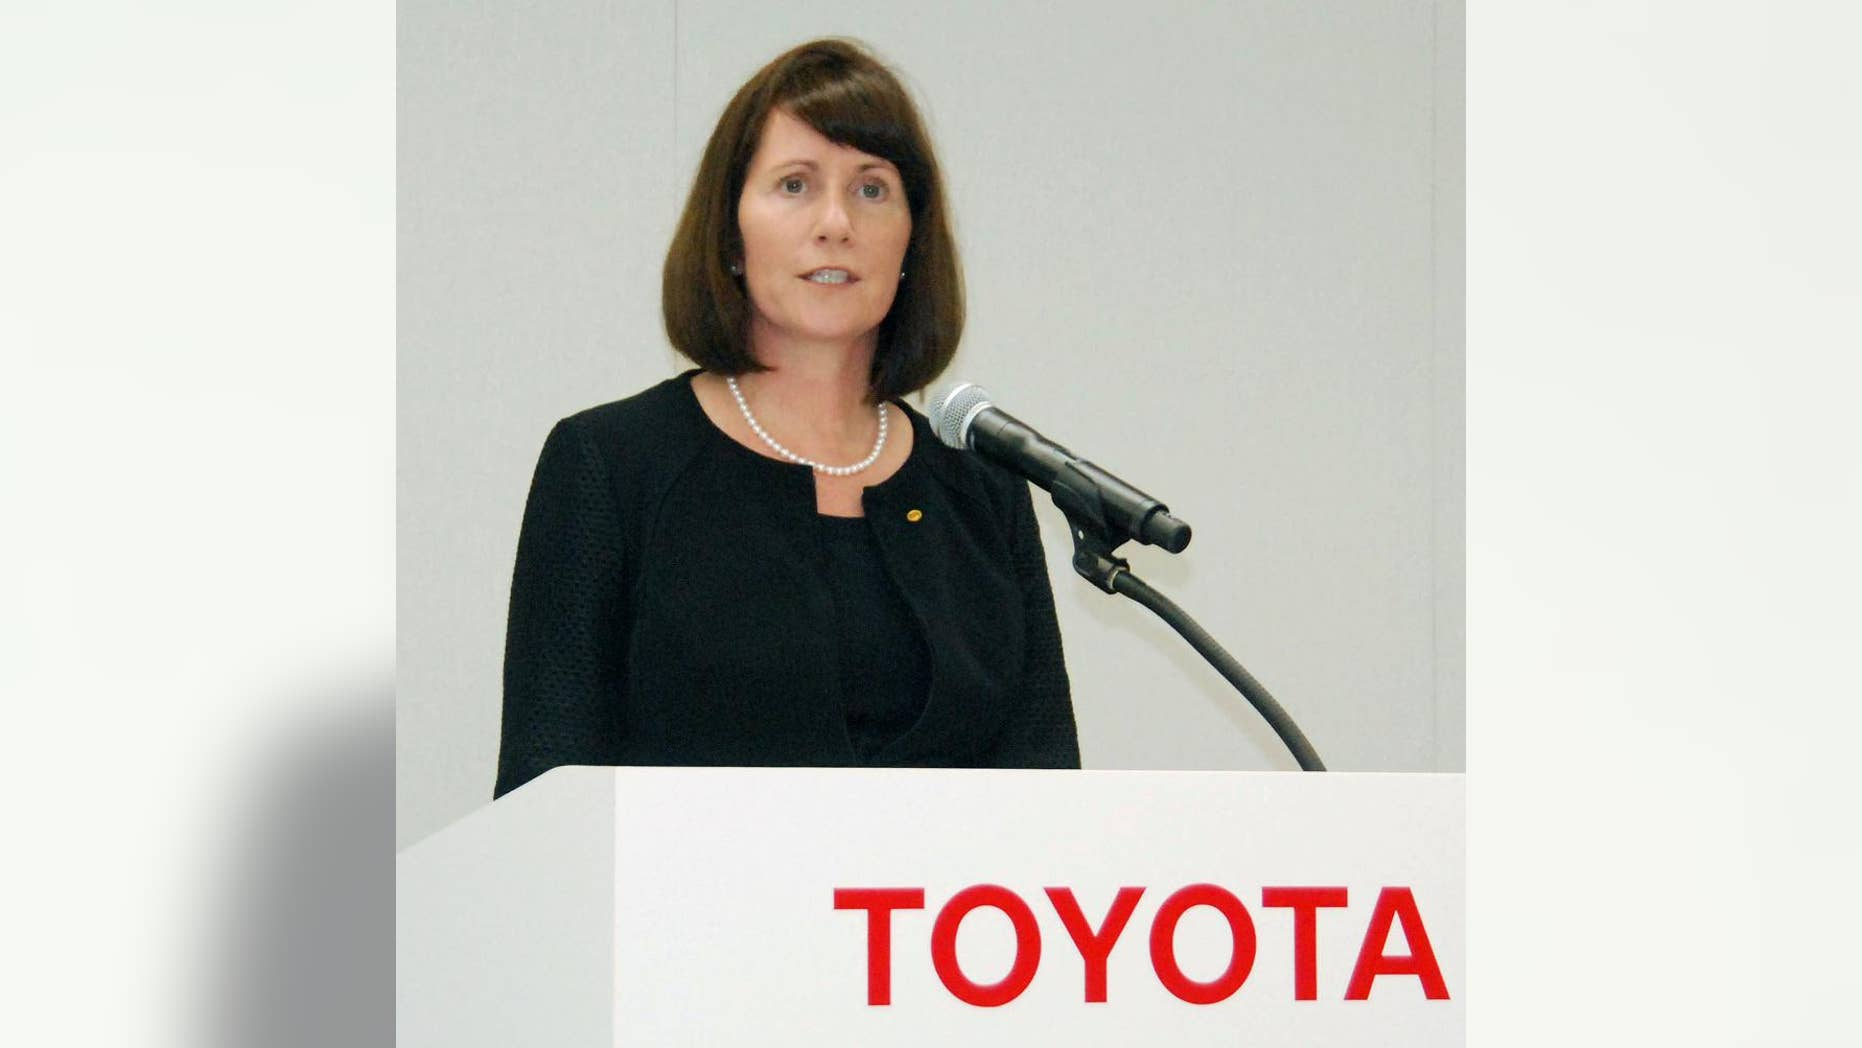 Julie Hamp, Toyota Motor Corp.'s new head of public relations, speaks during a press conference in Toyota, central Japan, Wednesday, June 17, 2015.  Hamp was arrested Thursday, June 18,  on suspicion of importing an illegal pain medicine into Japan, Tokyo police said.  Hamp, an American, was appointed in April as Toyota's first female top executive. She had been moving her things to Japan from California, where she had been head of communications for Toyota's U.S. operations.  (Kyodo News via AP) JAPAN OUT, CREDIT MANDATORY